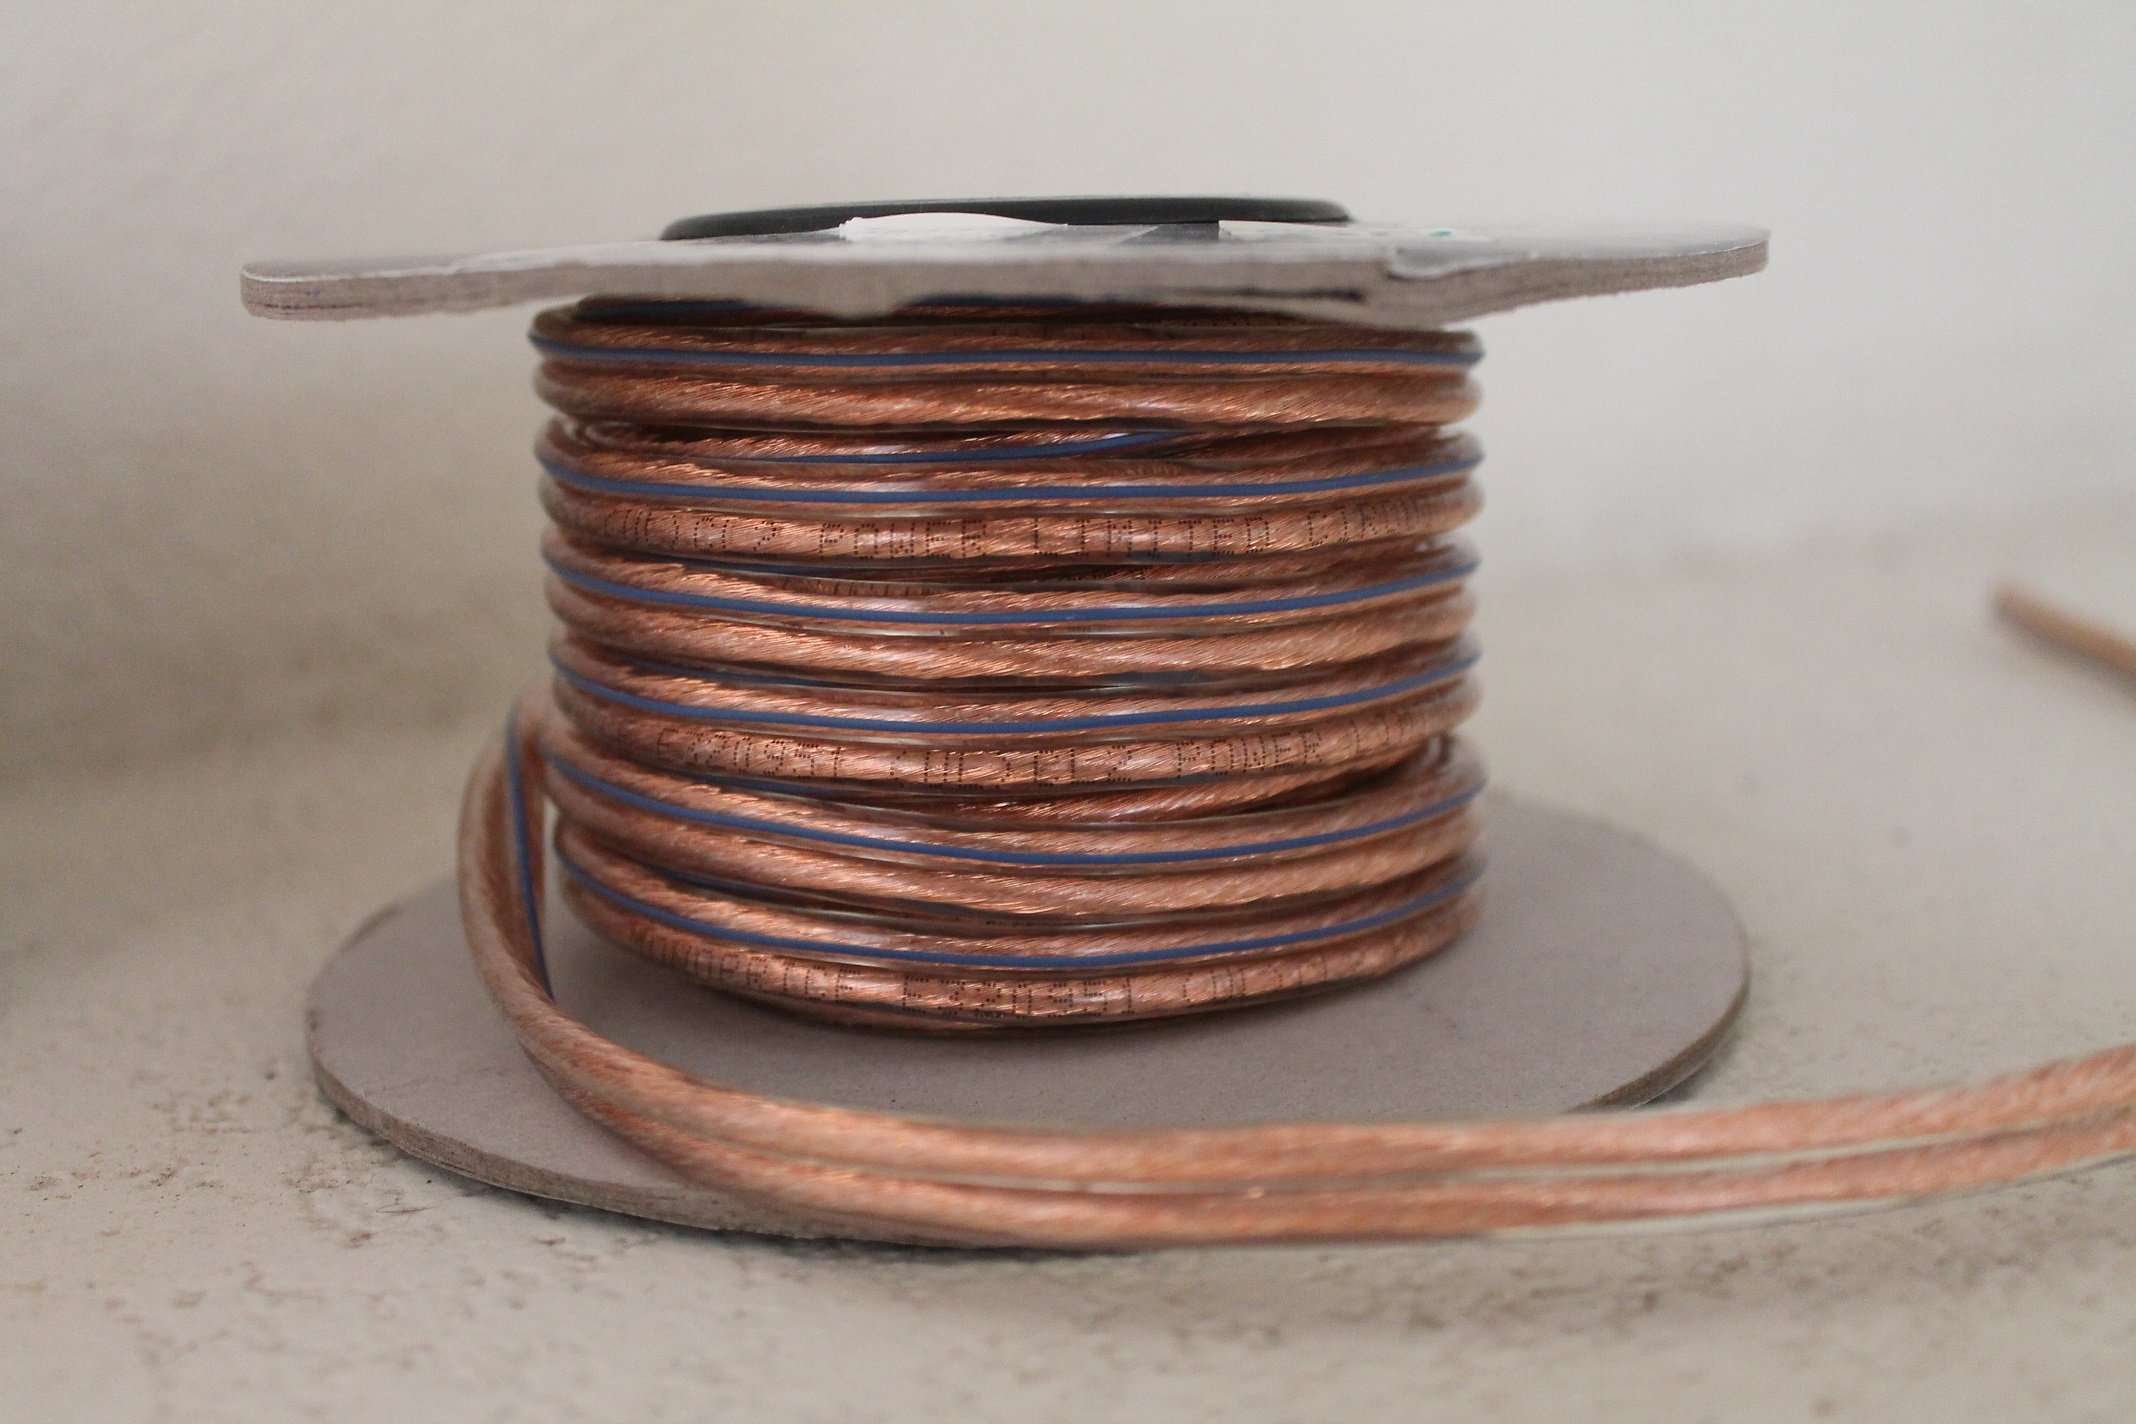 Review Incl Just Got Monoprice Speaker Wire In Why Do You Guys